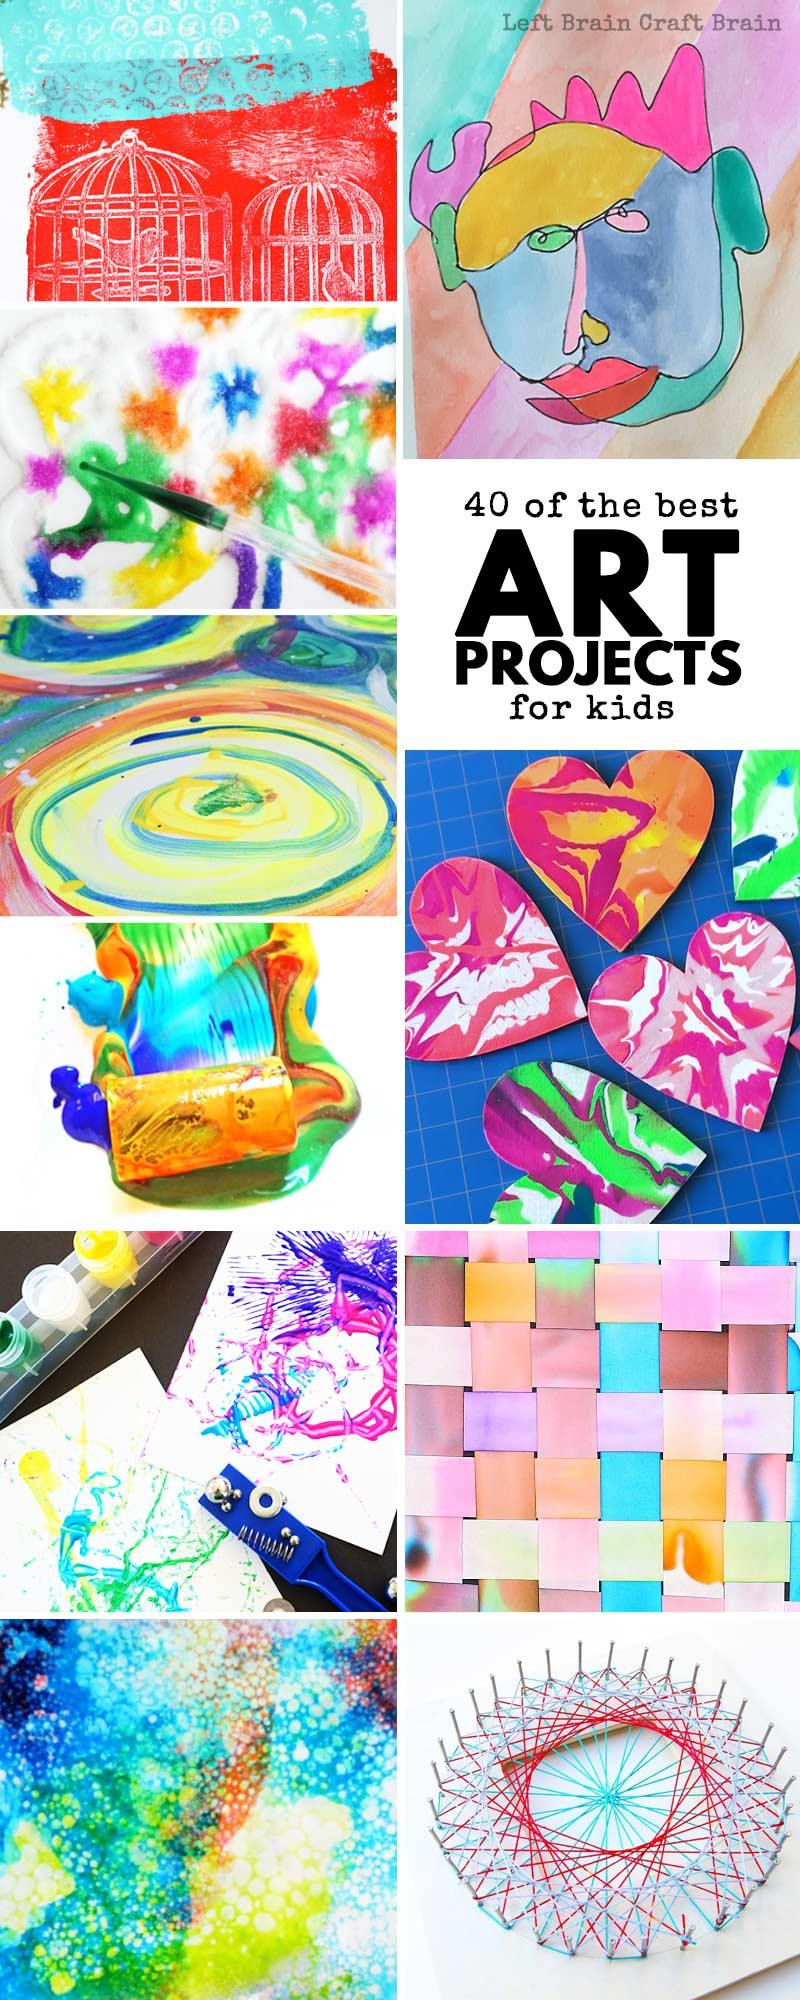 Best ideas about Arts And Crafts Projects For Kids . Save or Pin 40 of the Best Art Projects for Kids Left Brain Craft Brain Now.